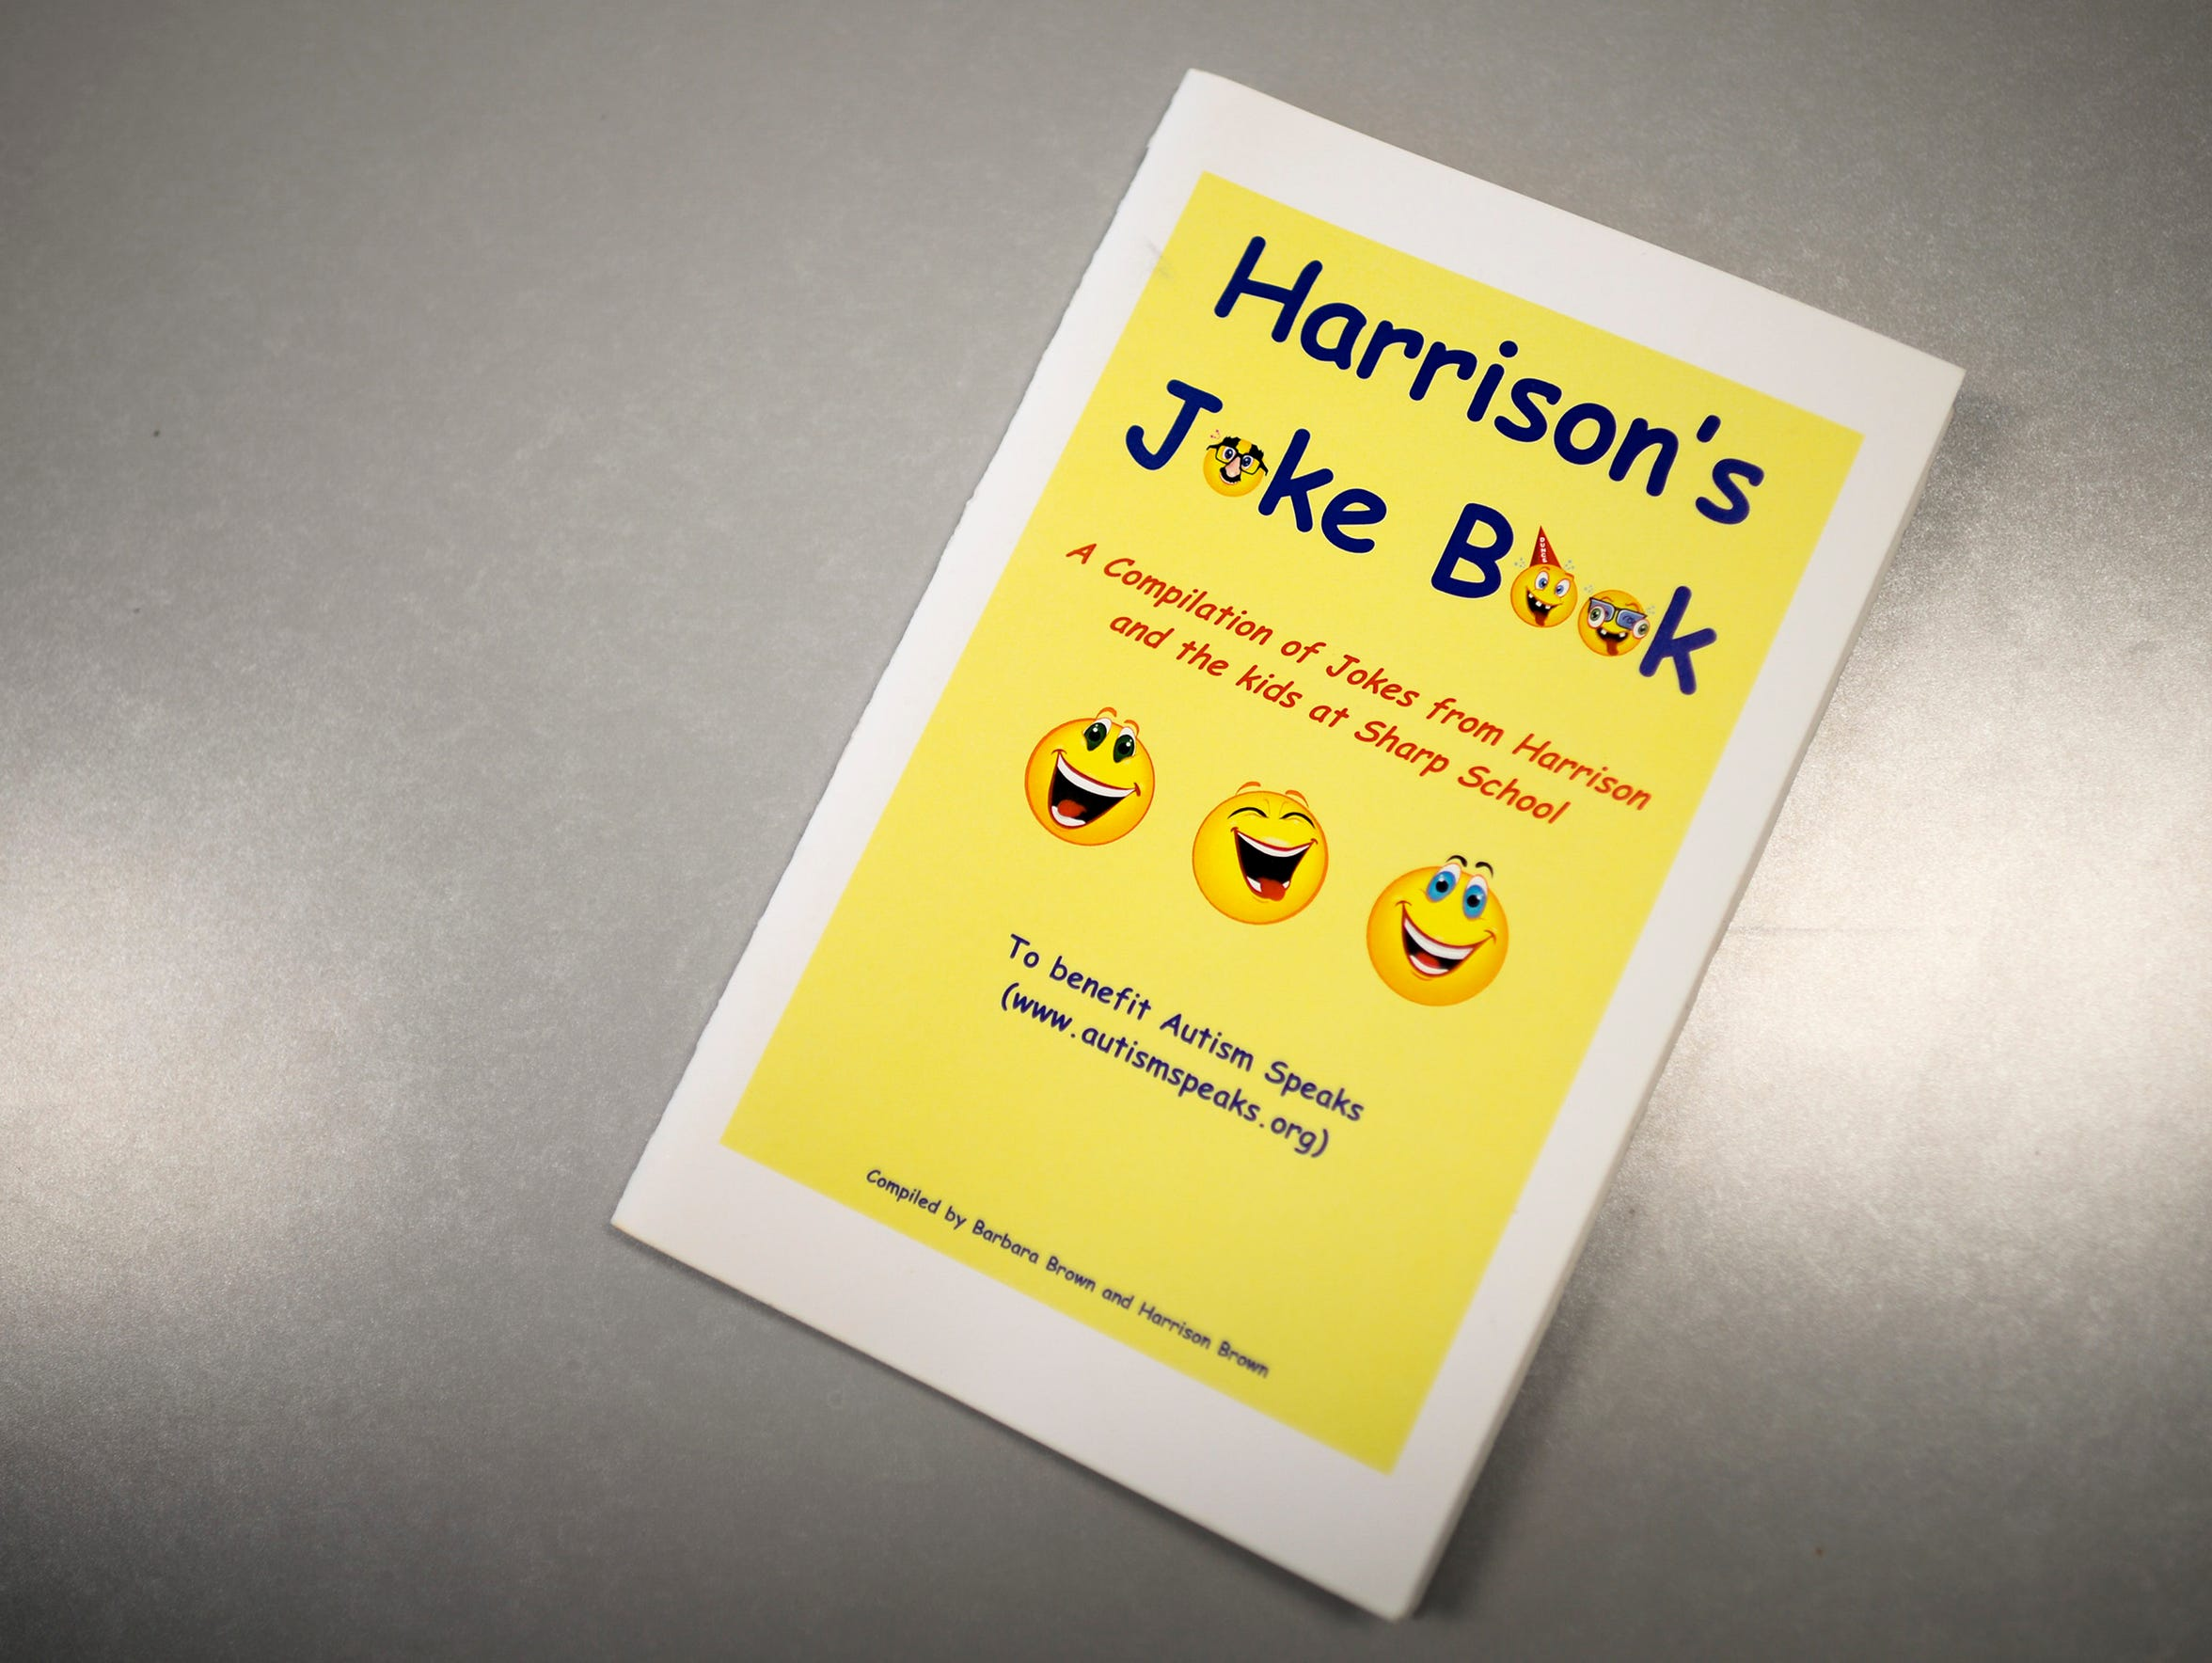 A joke book Harrison Brown, 19, put together while